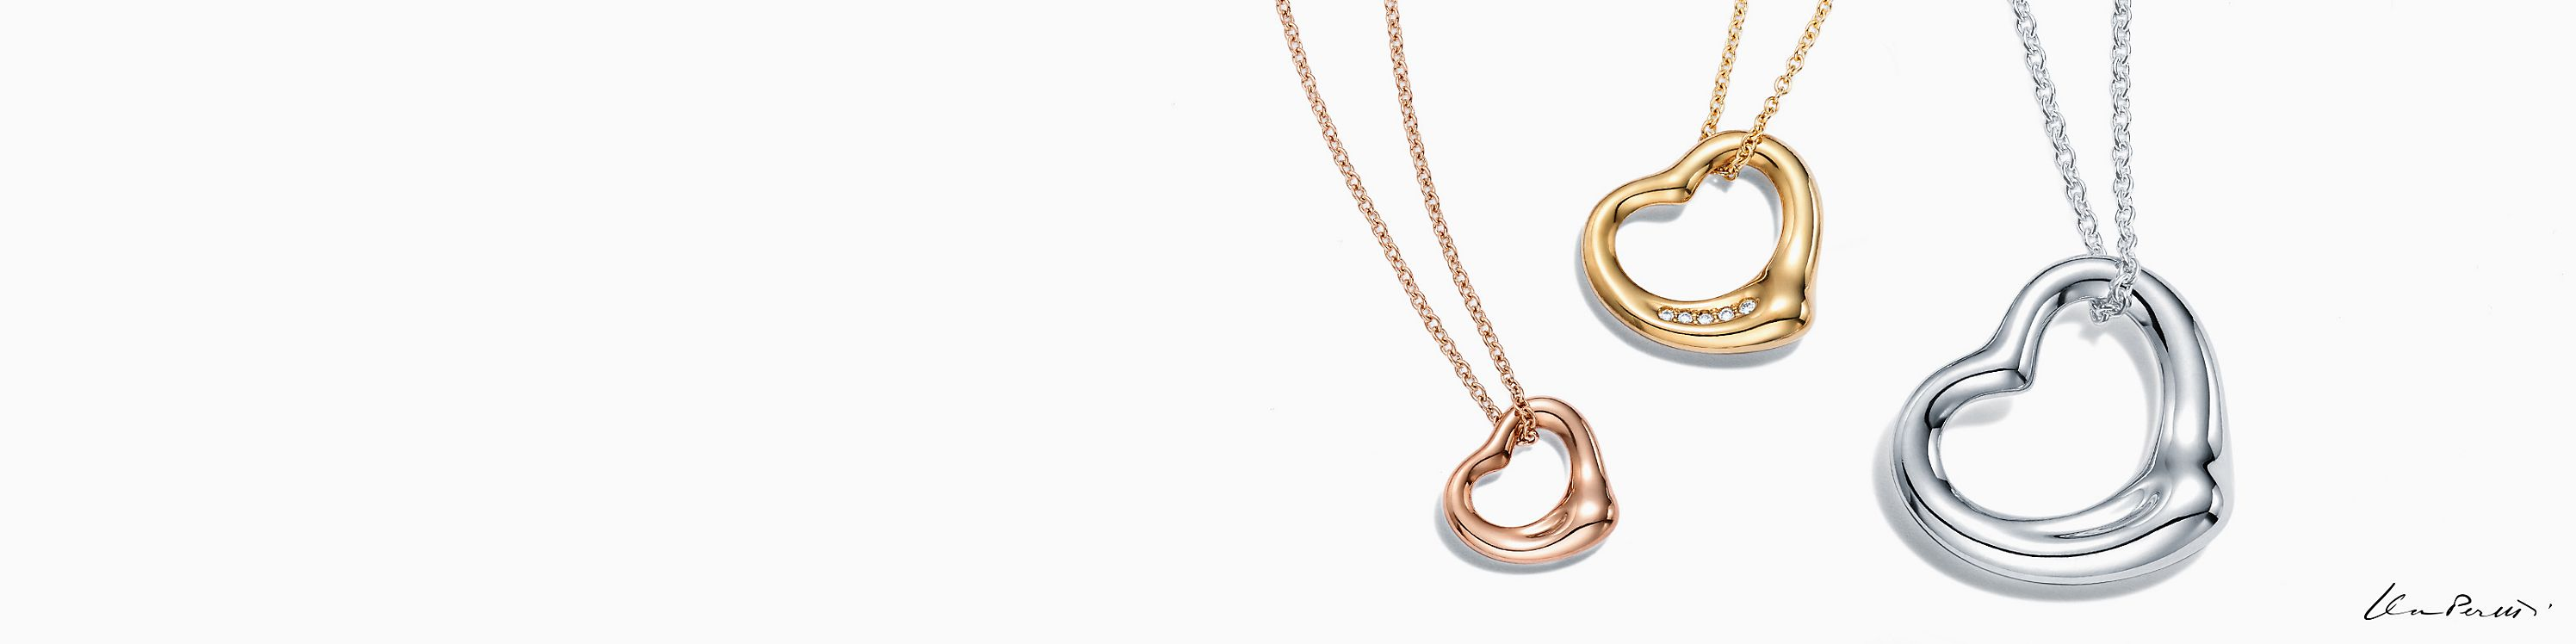 Browse Elsa Peretti™ Open Heart Jewelry